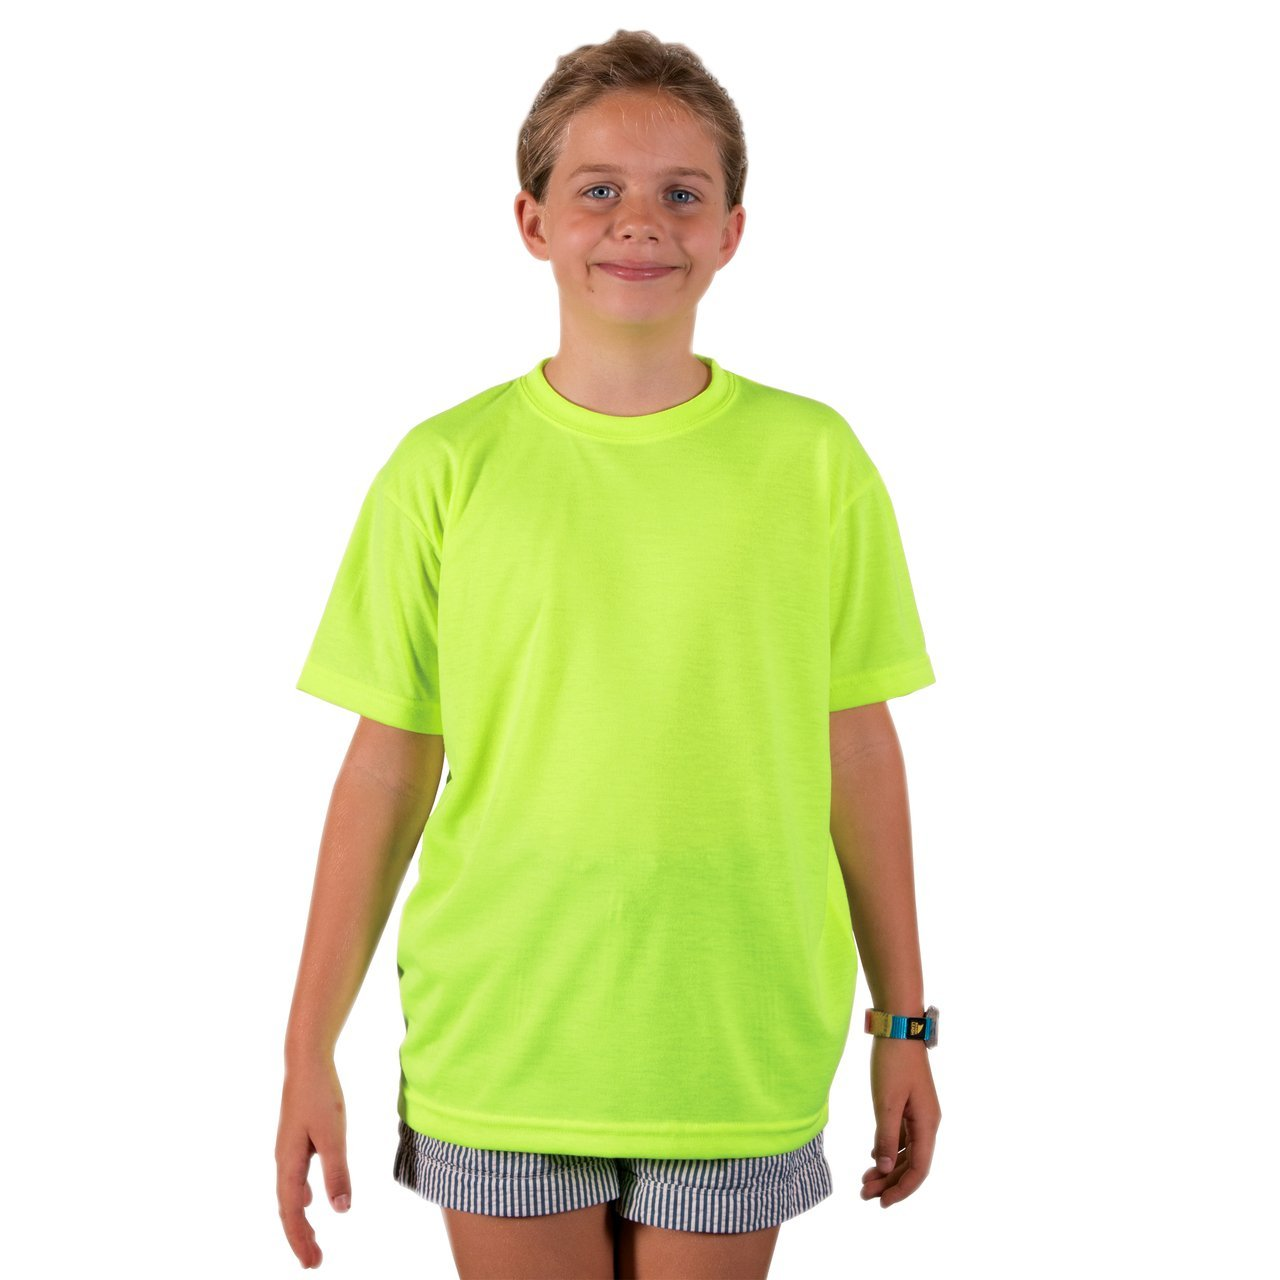 A3SJBBSY Youth Basic Performance T-Shirt - Safety Yellow